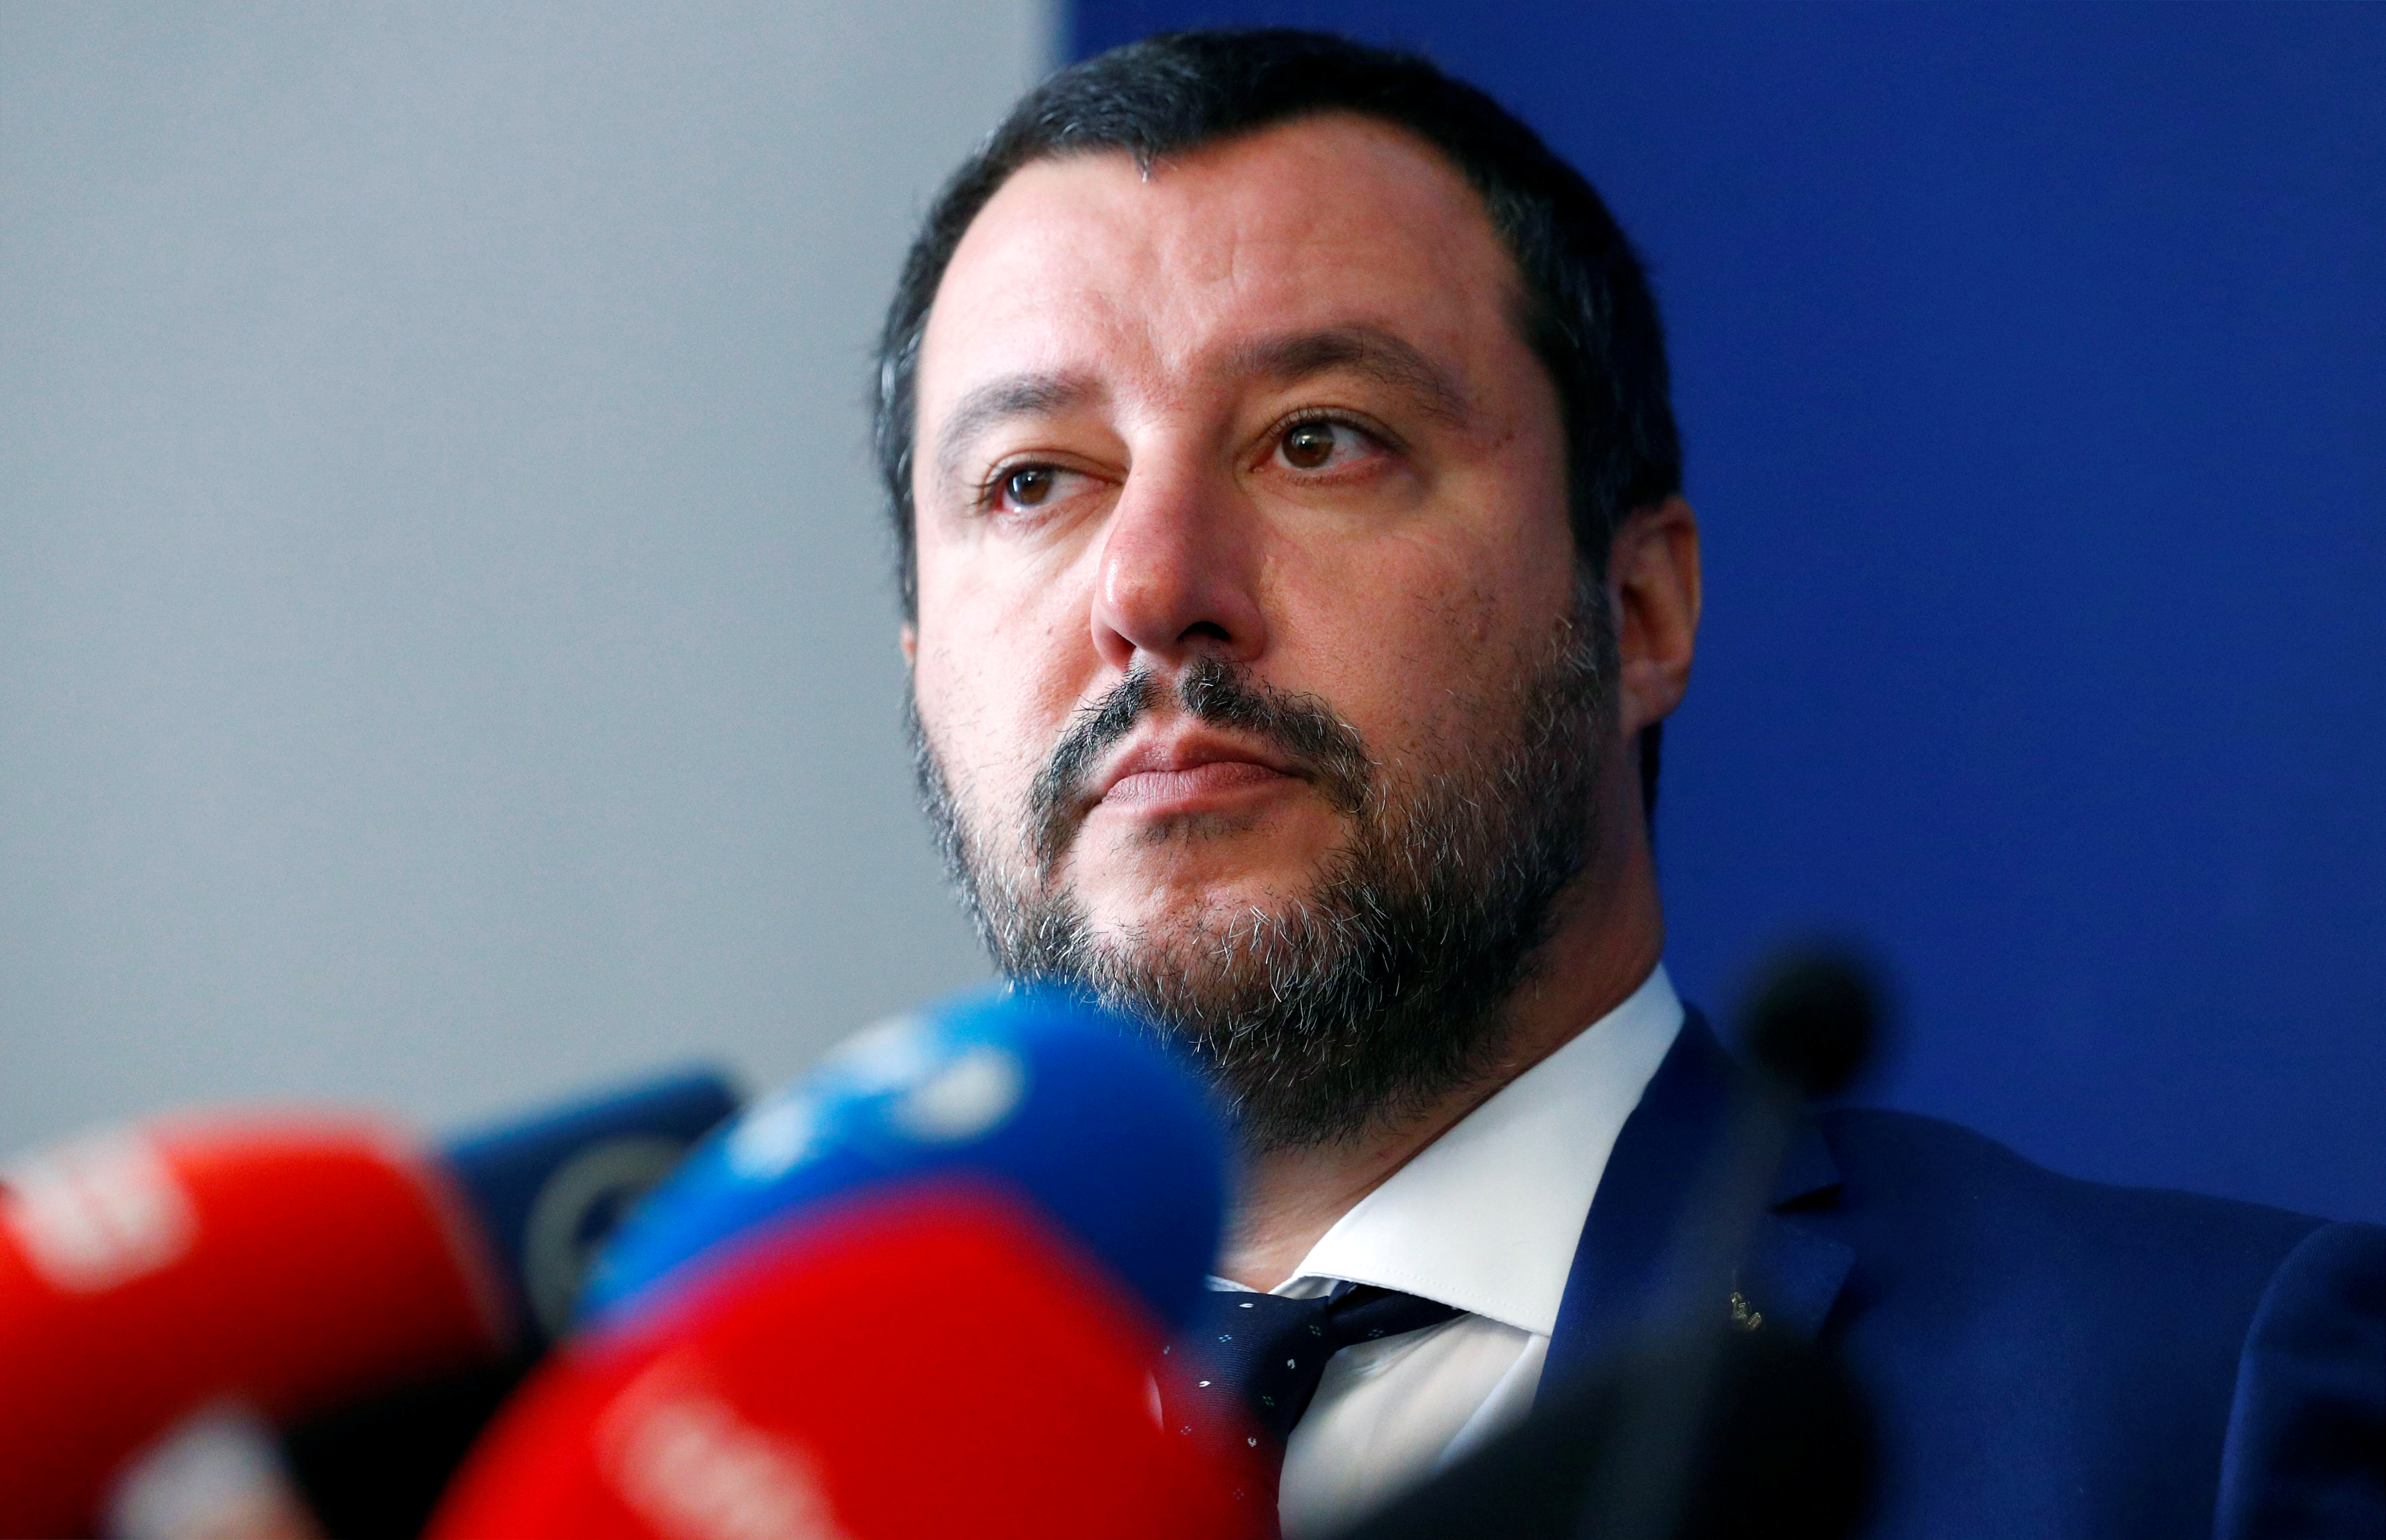 FILE PHOTO: Italy's far right leader and Interior Minister Matteo Salvini attends a a news conference with French far right leader Marine Le Pen in Rome, Italy October 8, 2018. REUTERS/Max Rossi/File Photo